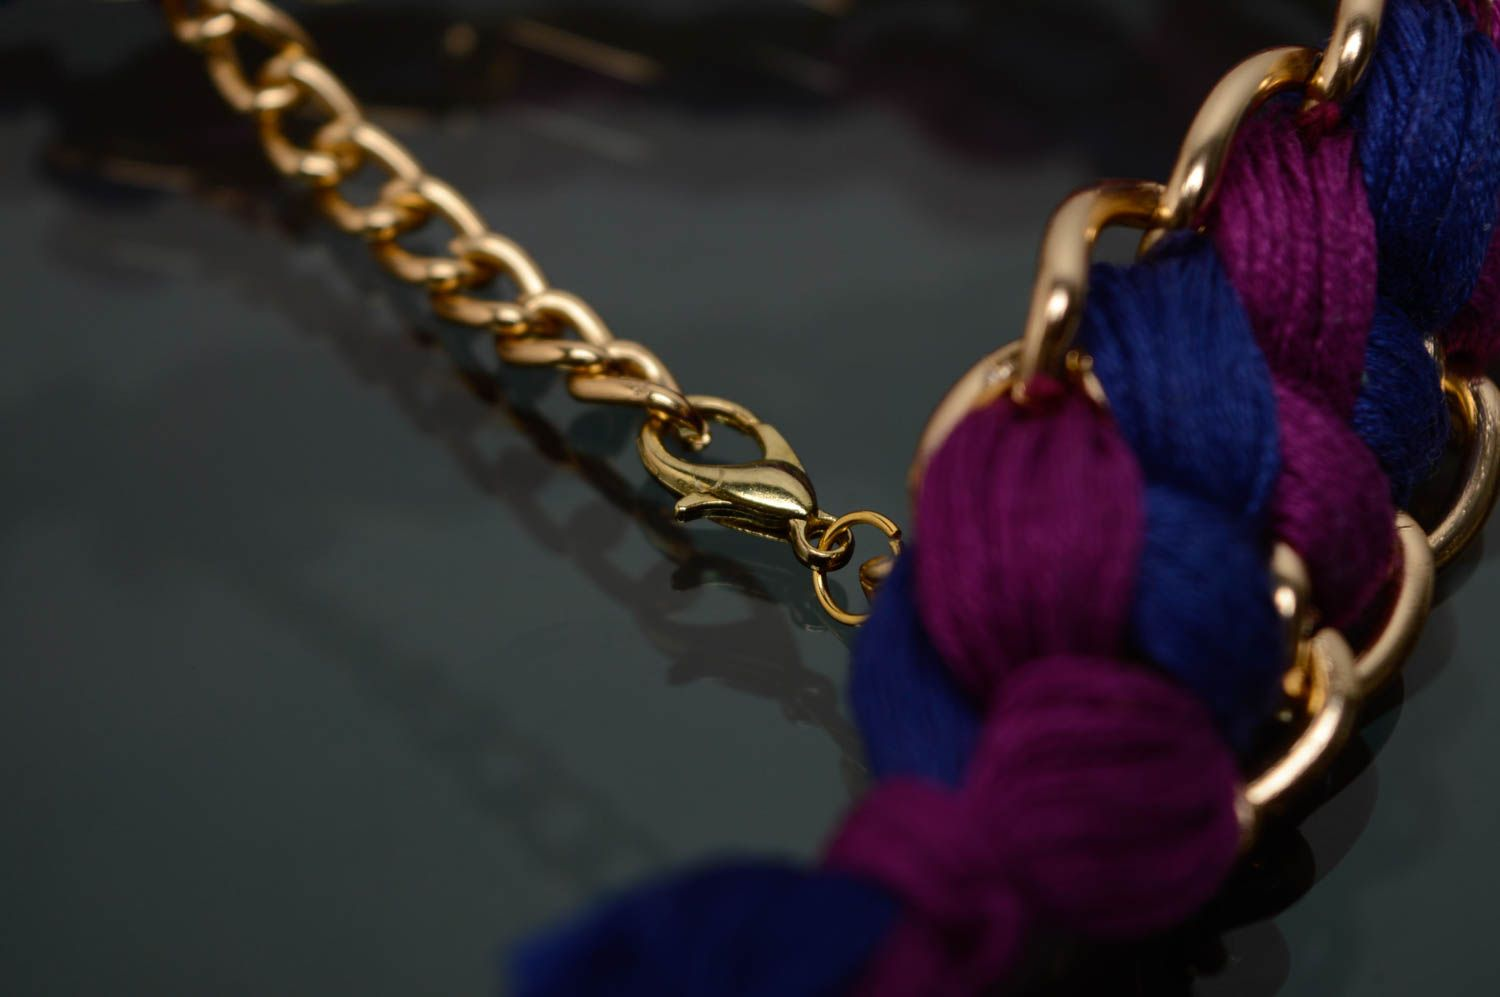 Woven moulin thread necklace with chain photo 5